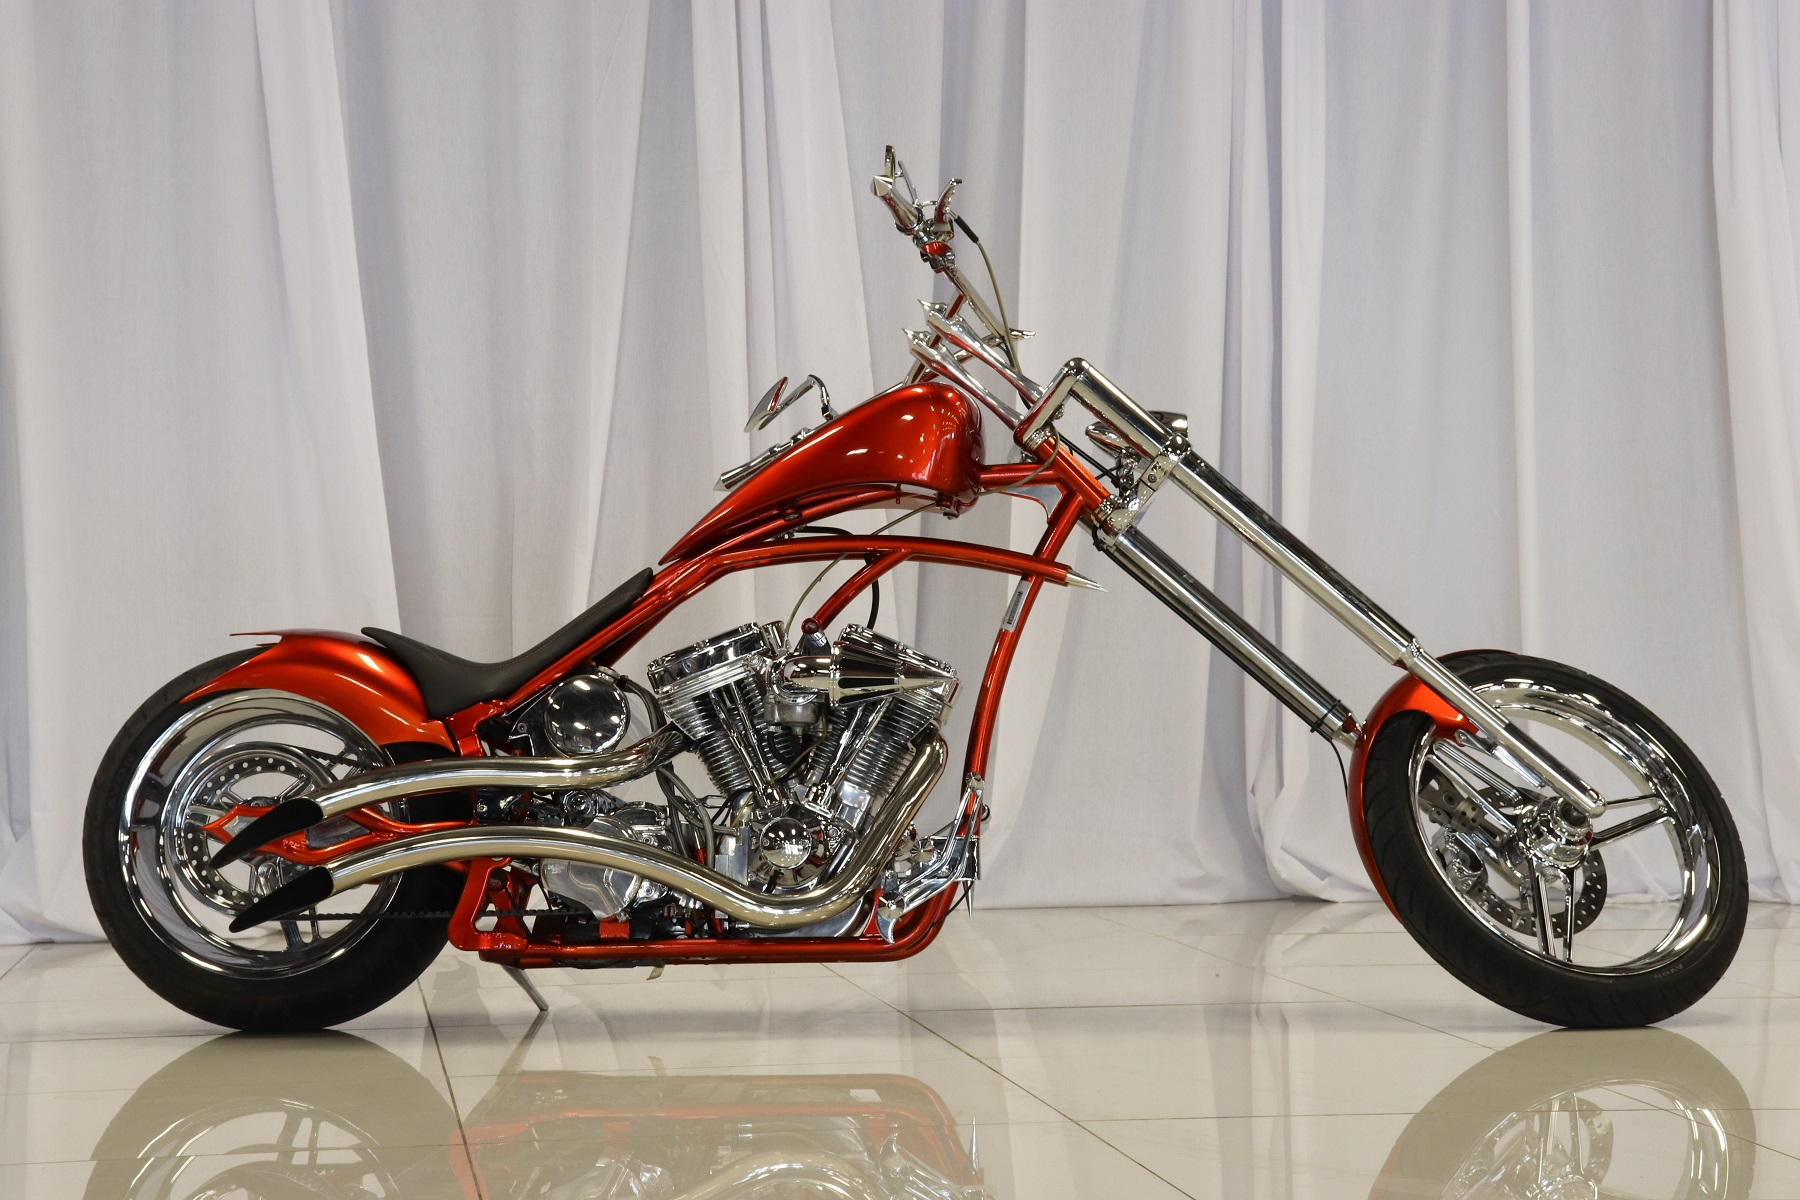 2010 Harley Davidson Custom Long Bike - Creative Rides